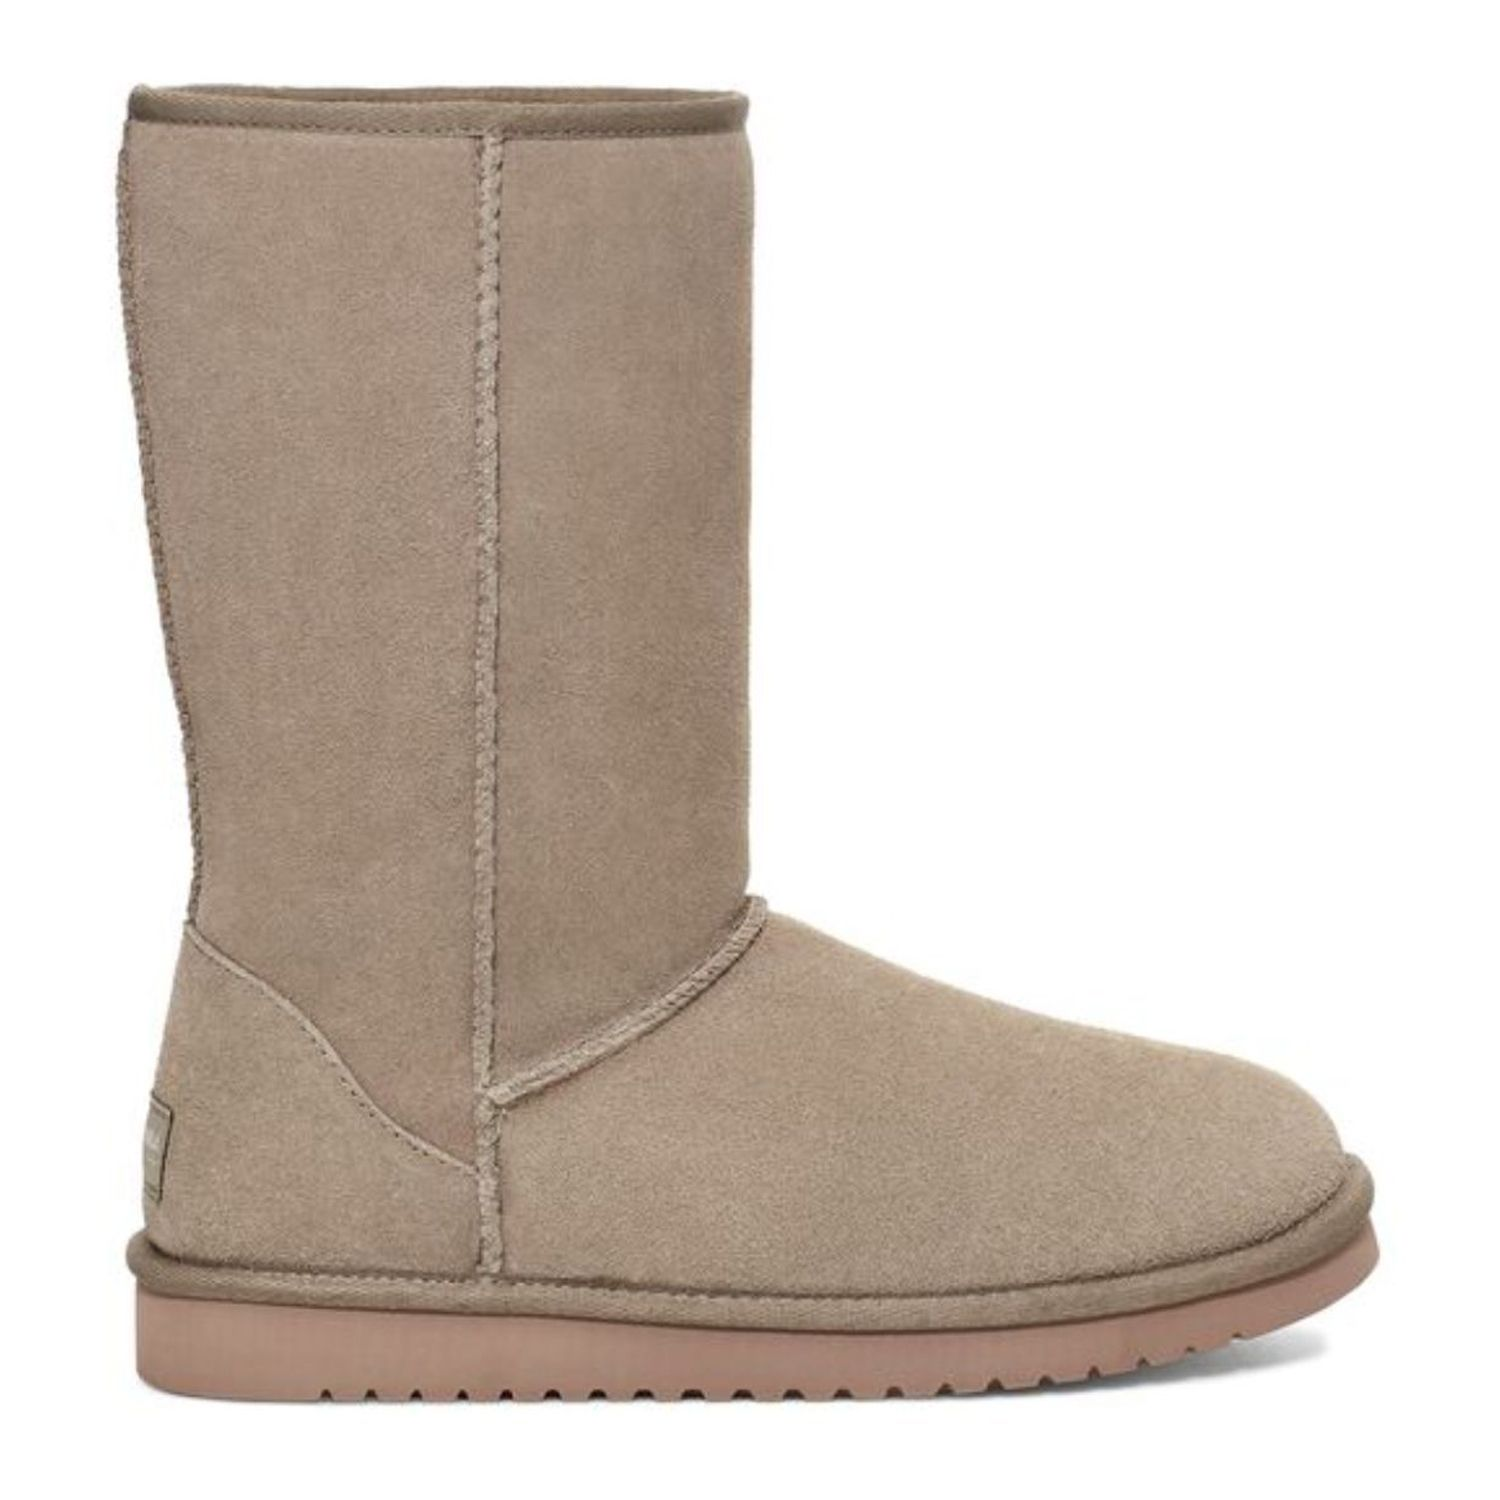 Womens Boots | Kohl's